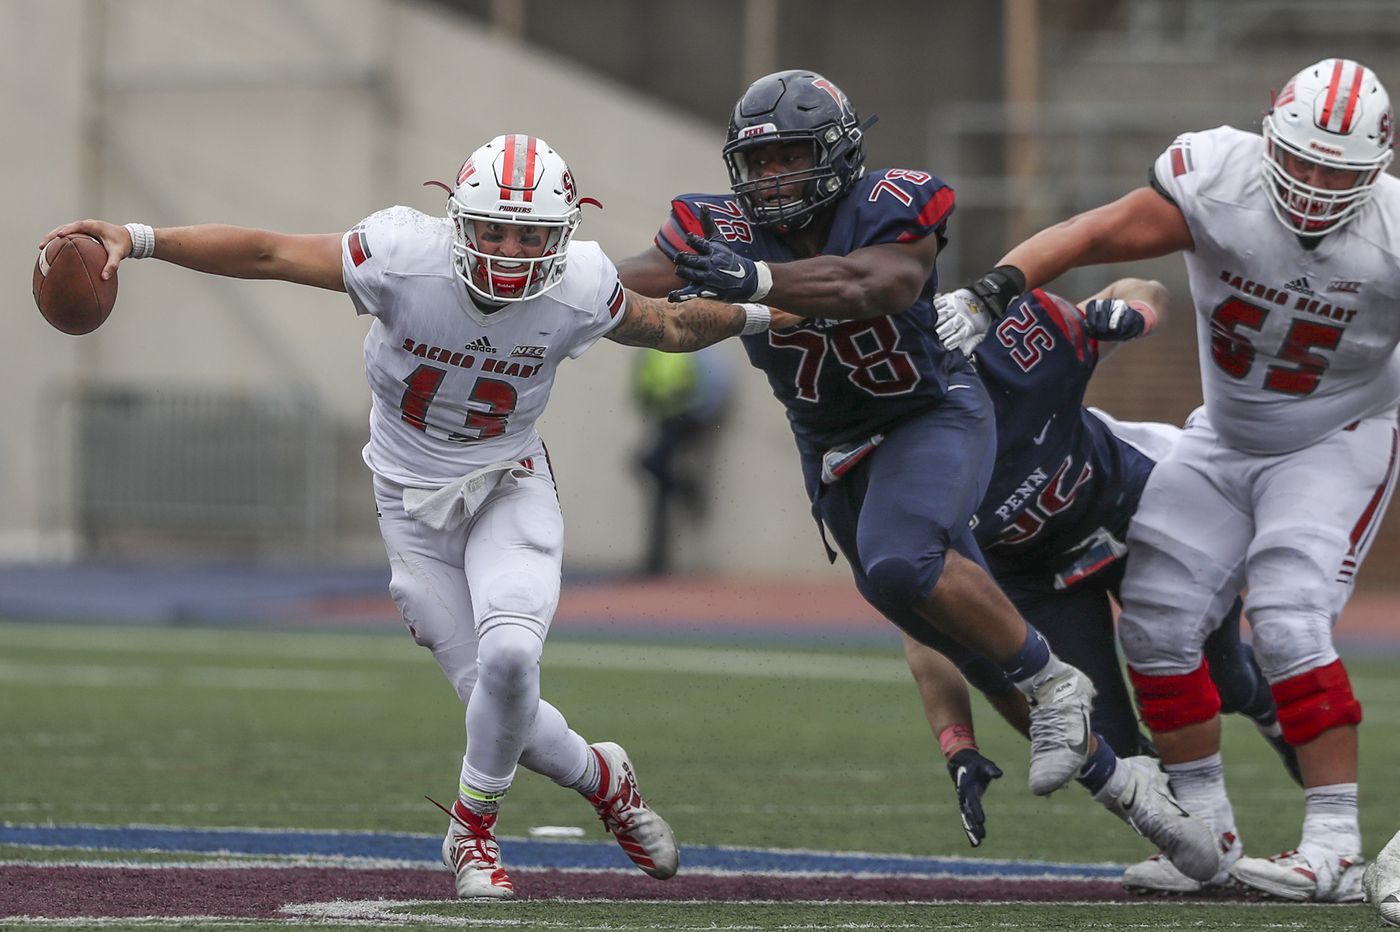 Penn football's Prince Emili emerging as vocal leader